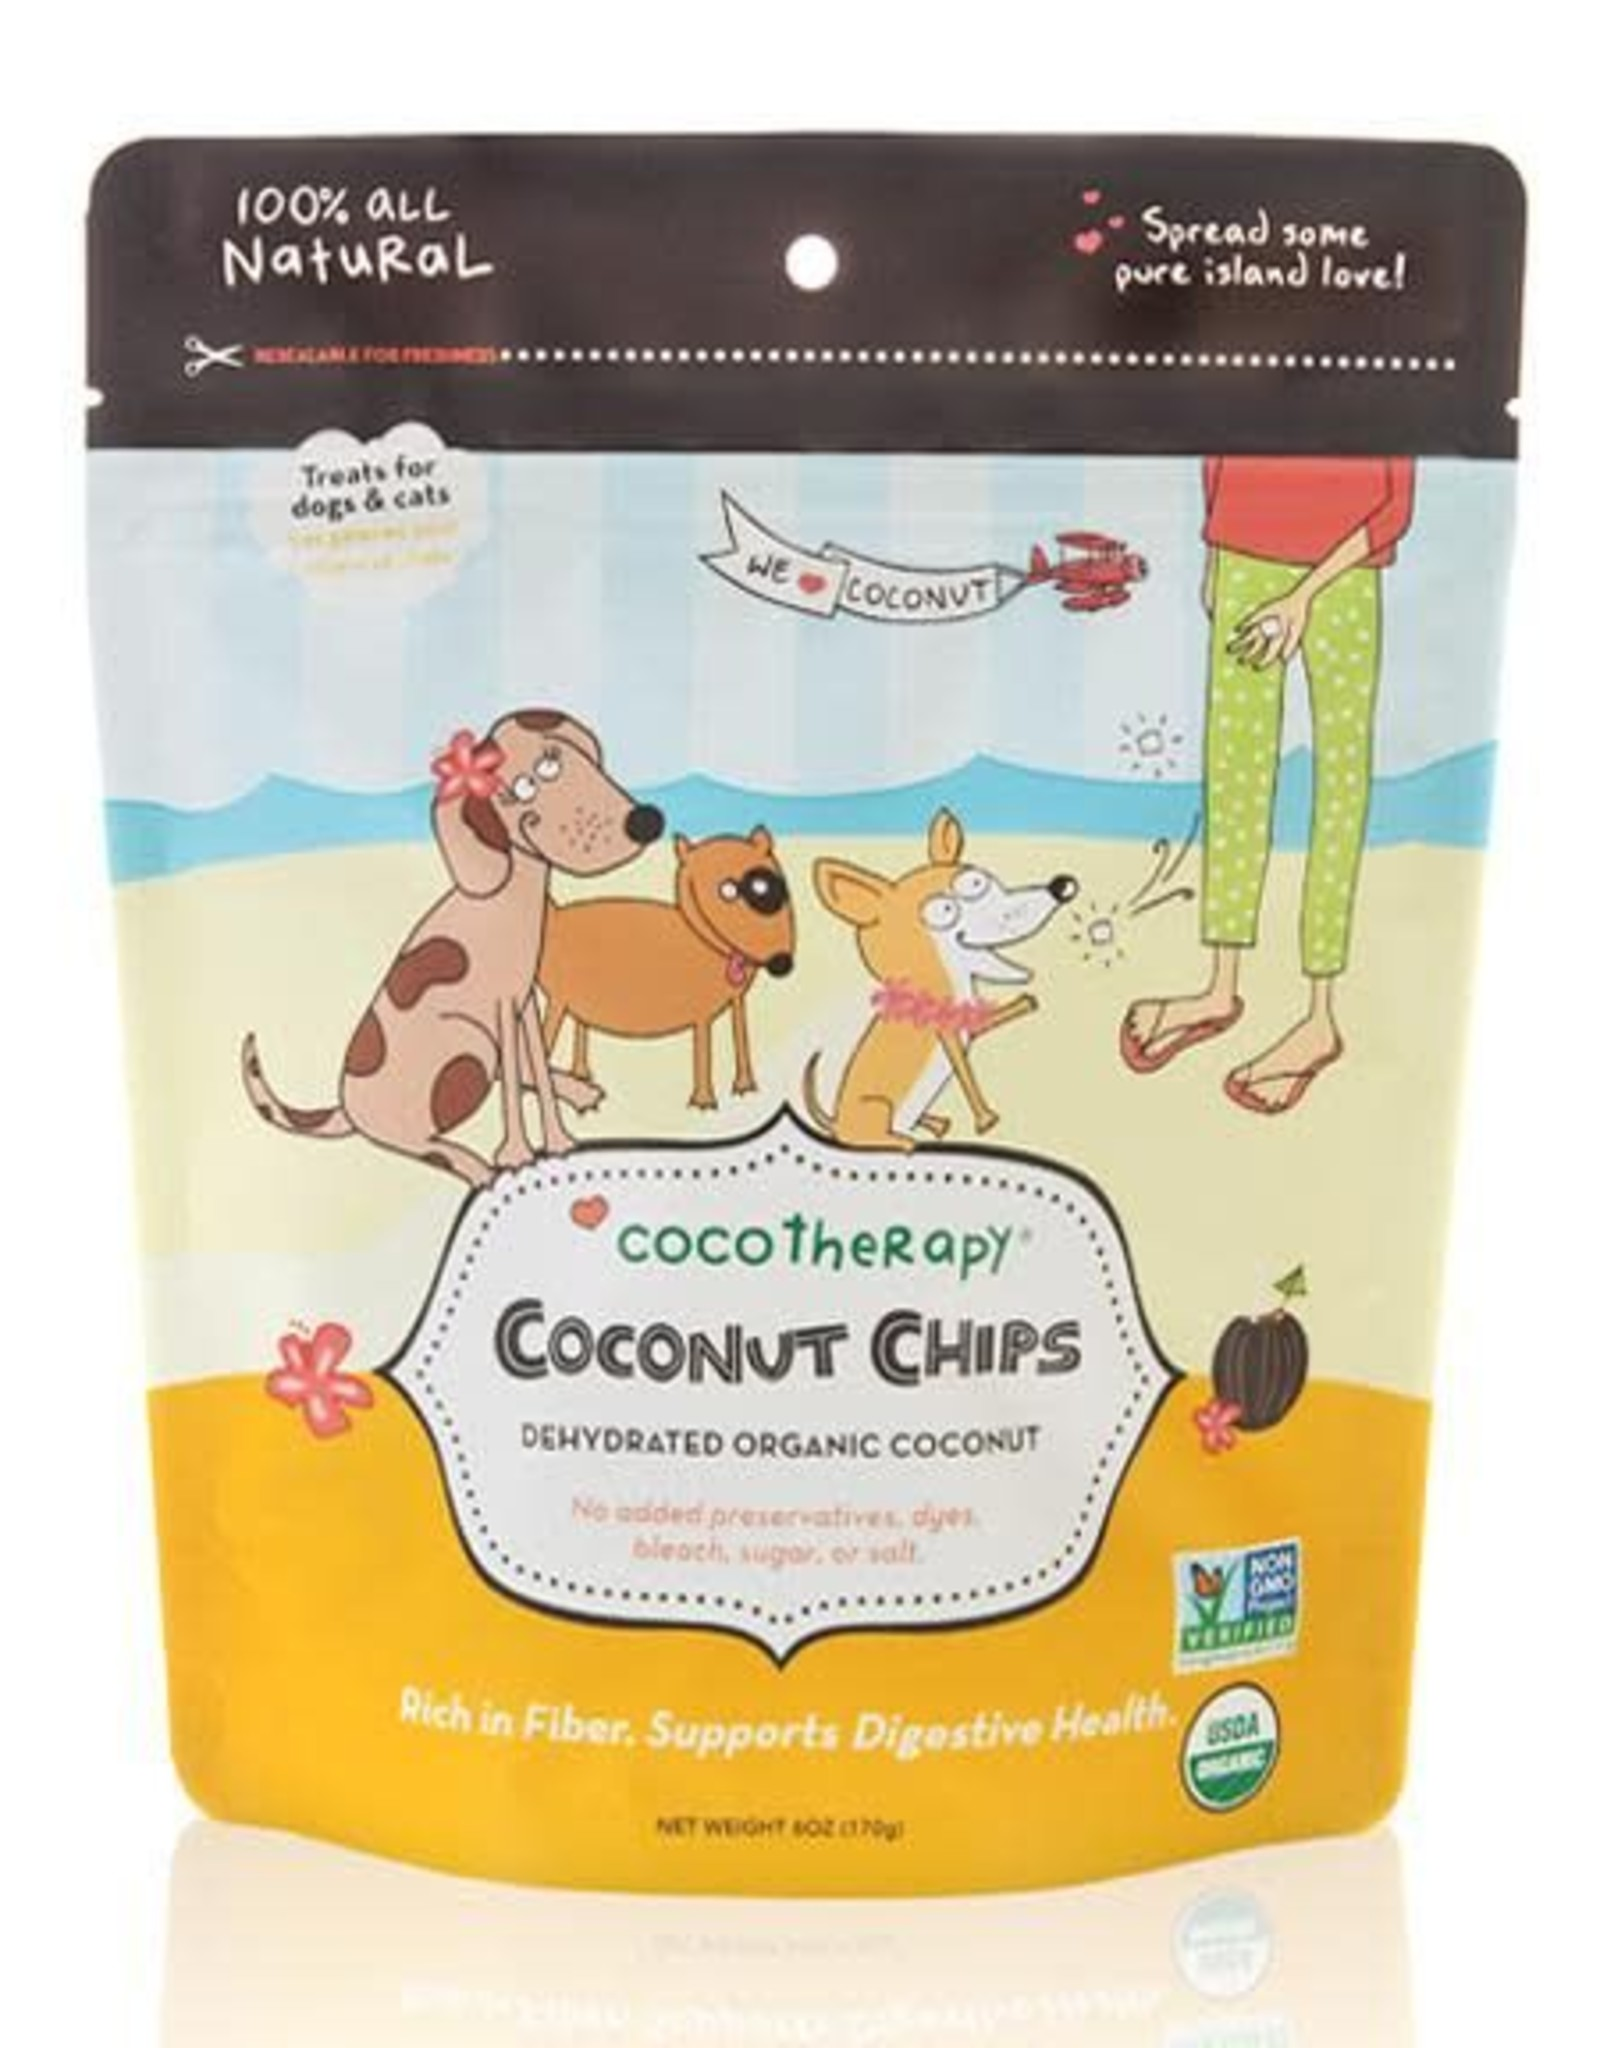 CocoTherapy Coco Therapy Coconut Chips 6 oz.